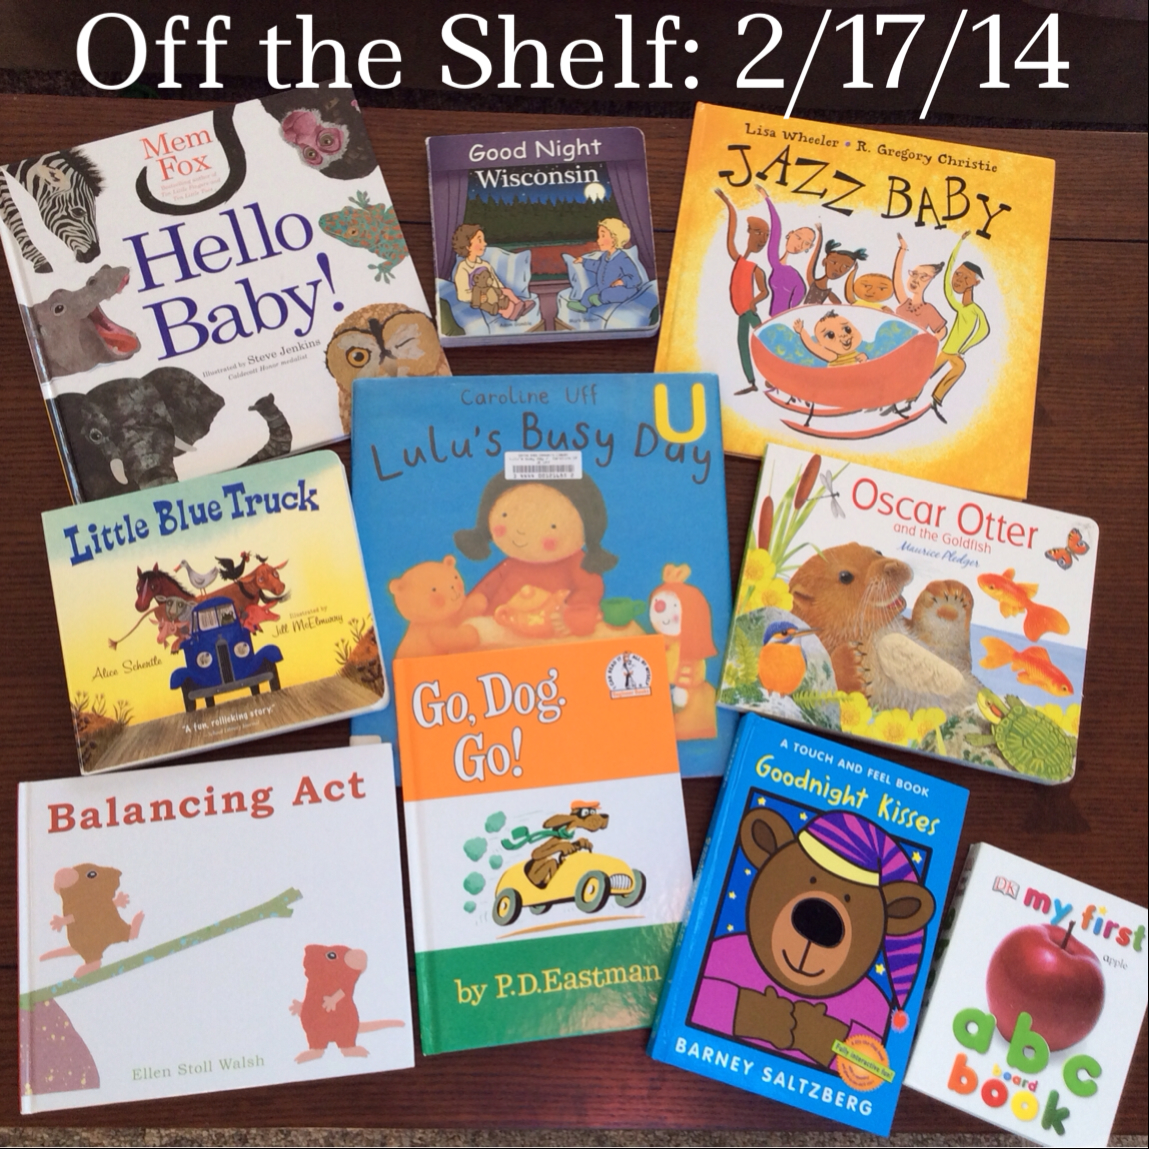 off_the_shelf_2-17-14